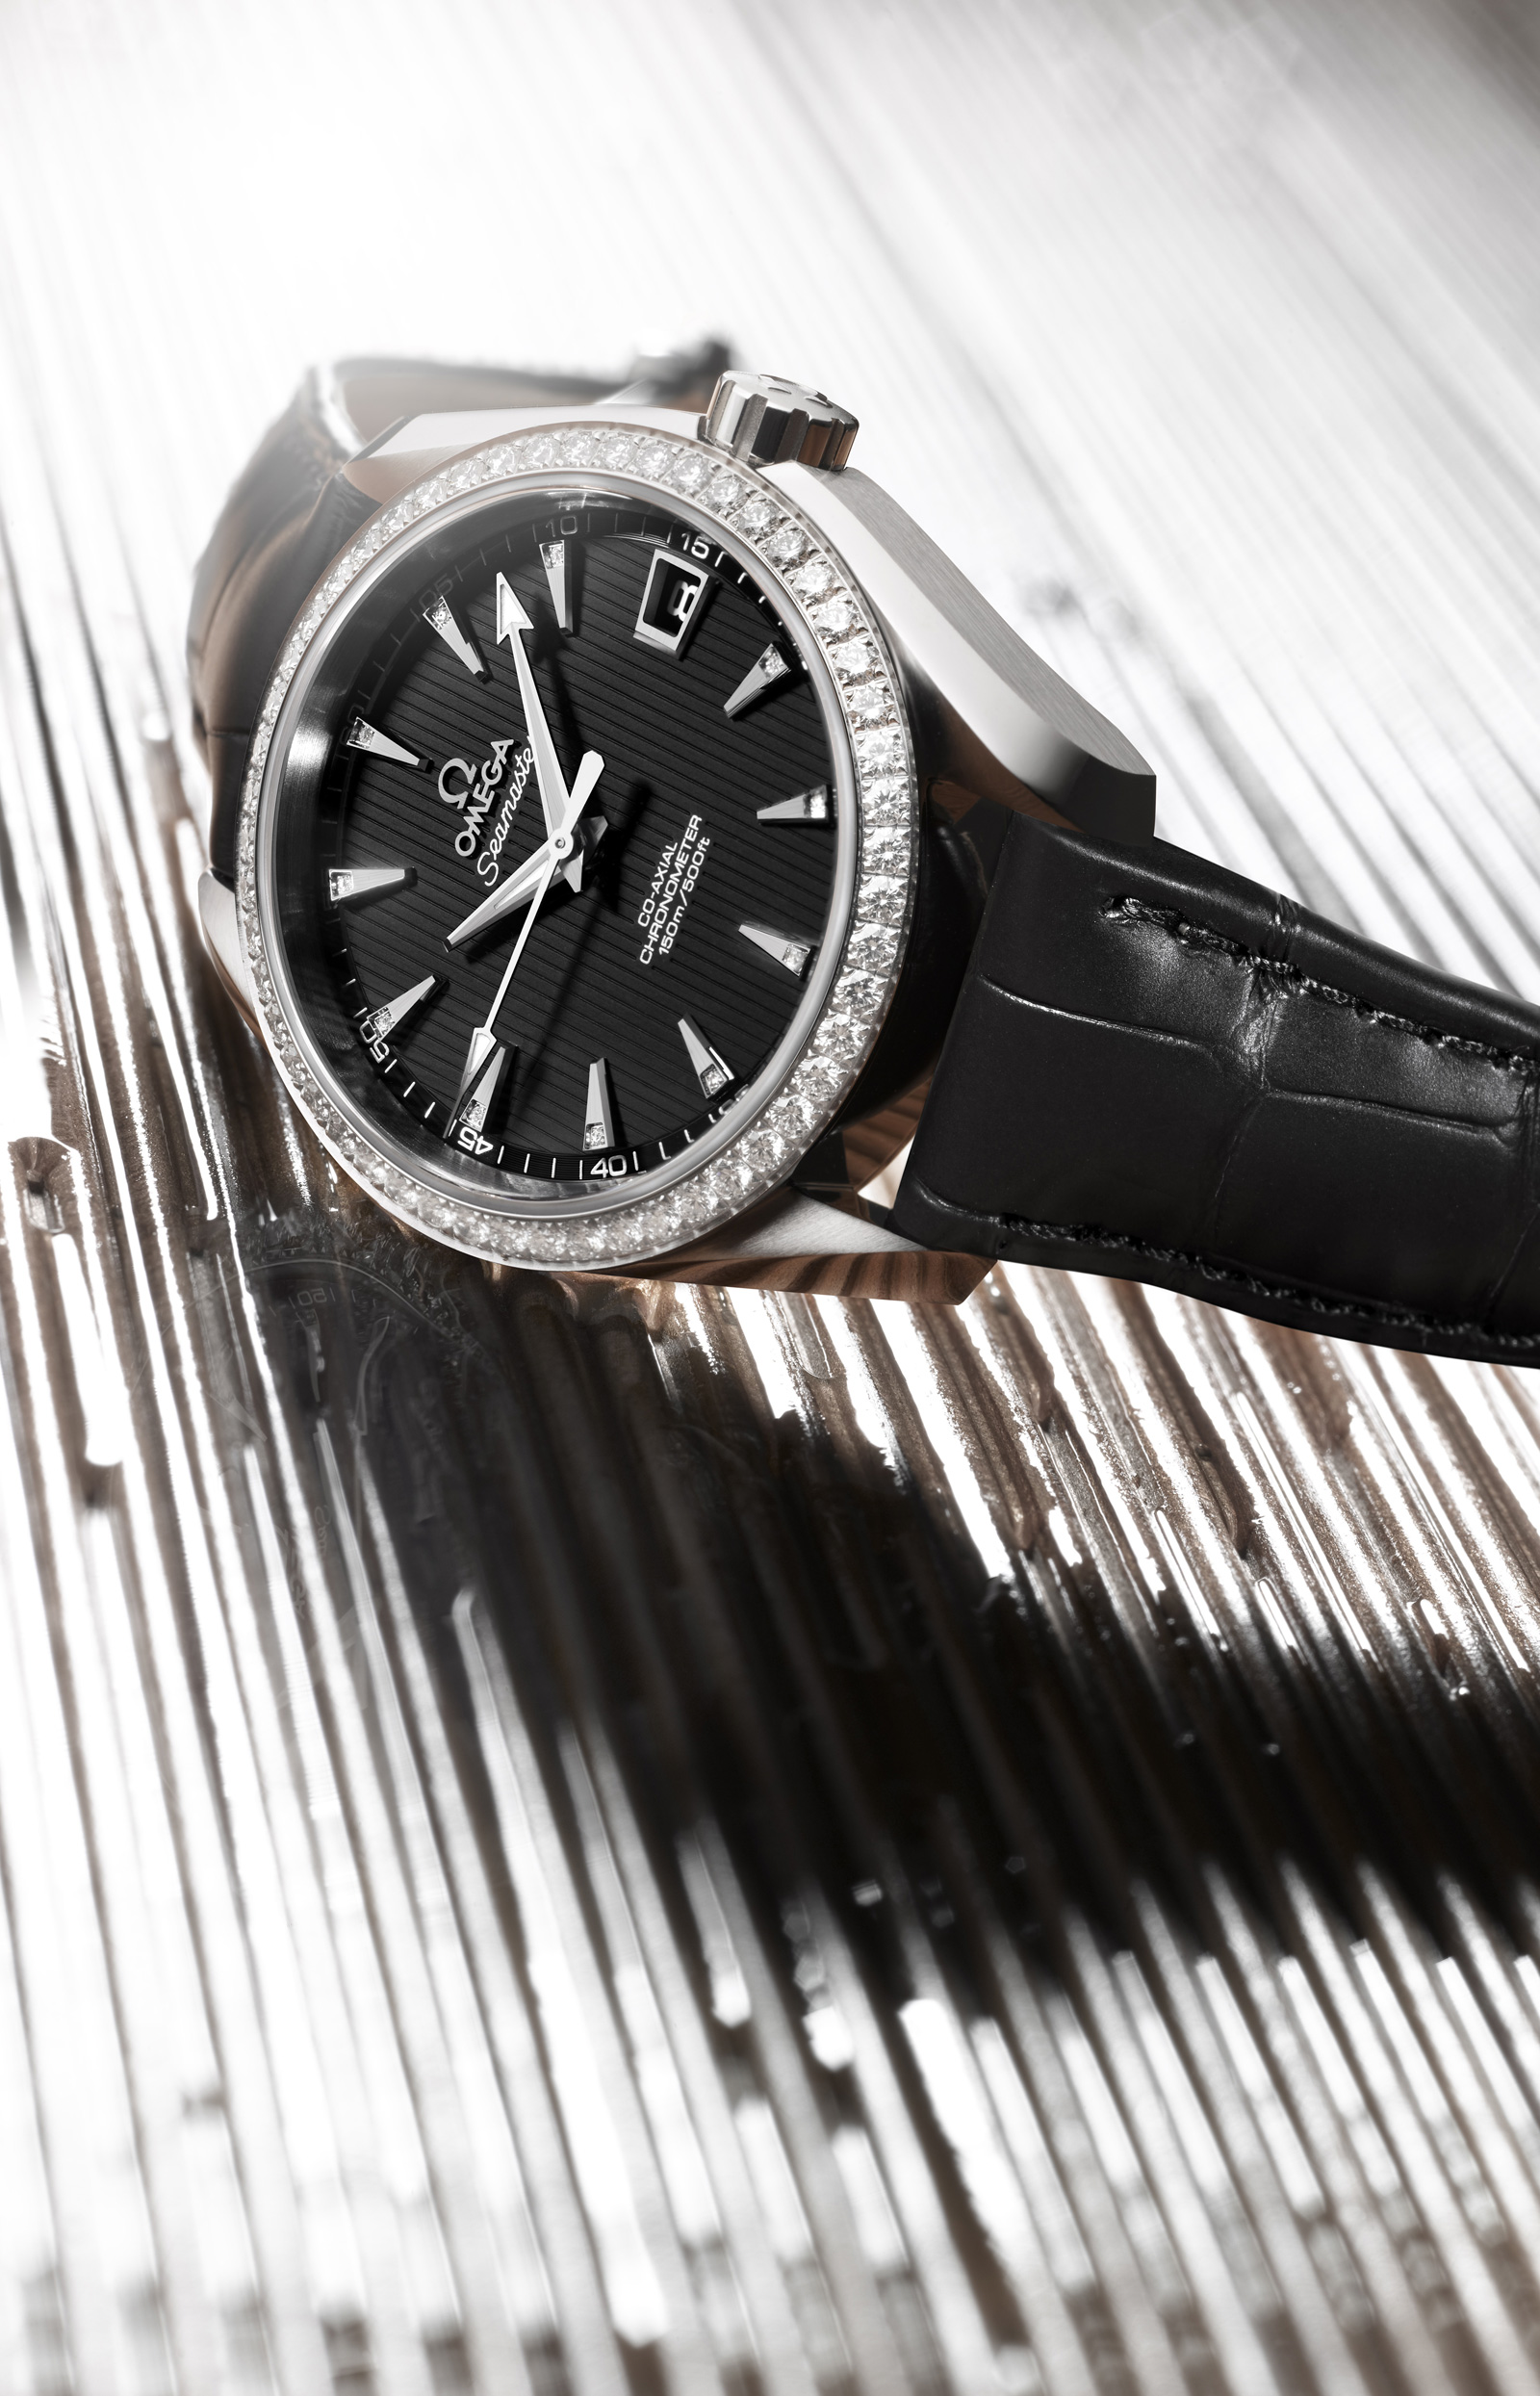 Omega Seamaster Aqua Terra Jewellery Co-Axial Stainless Steel Edition